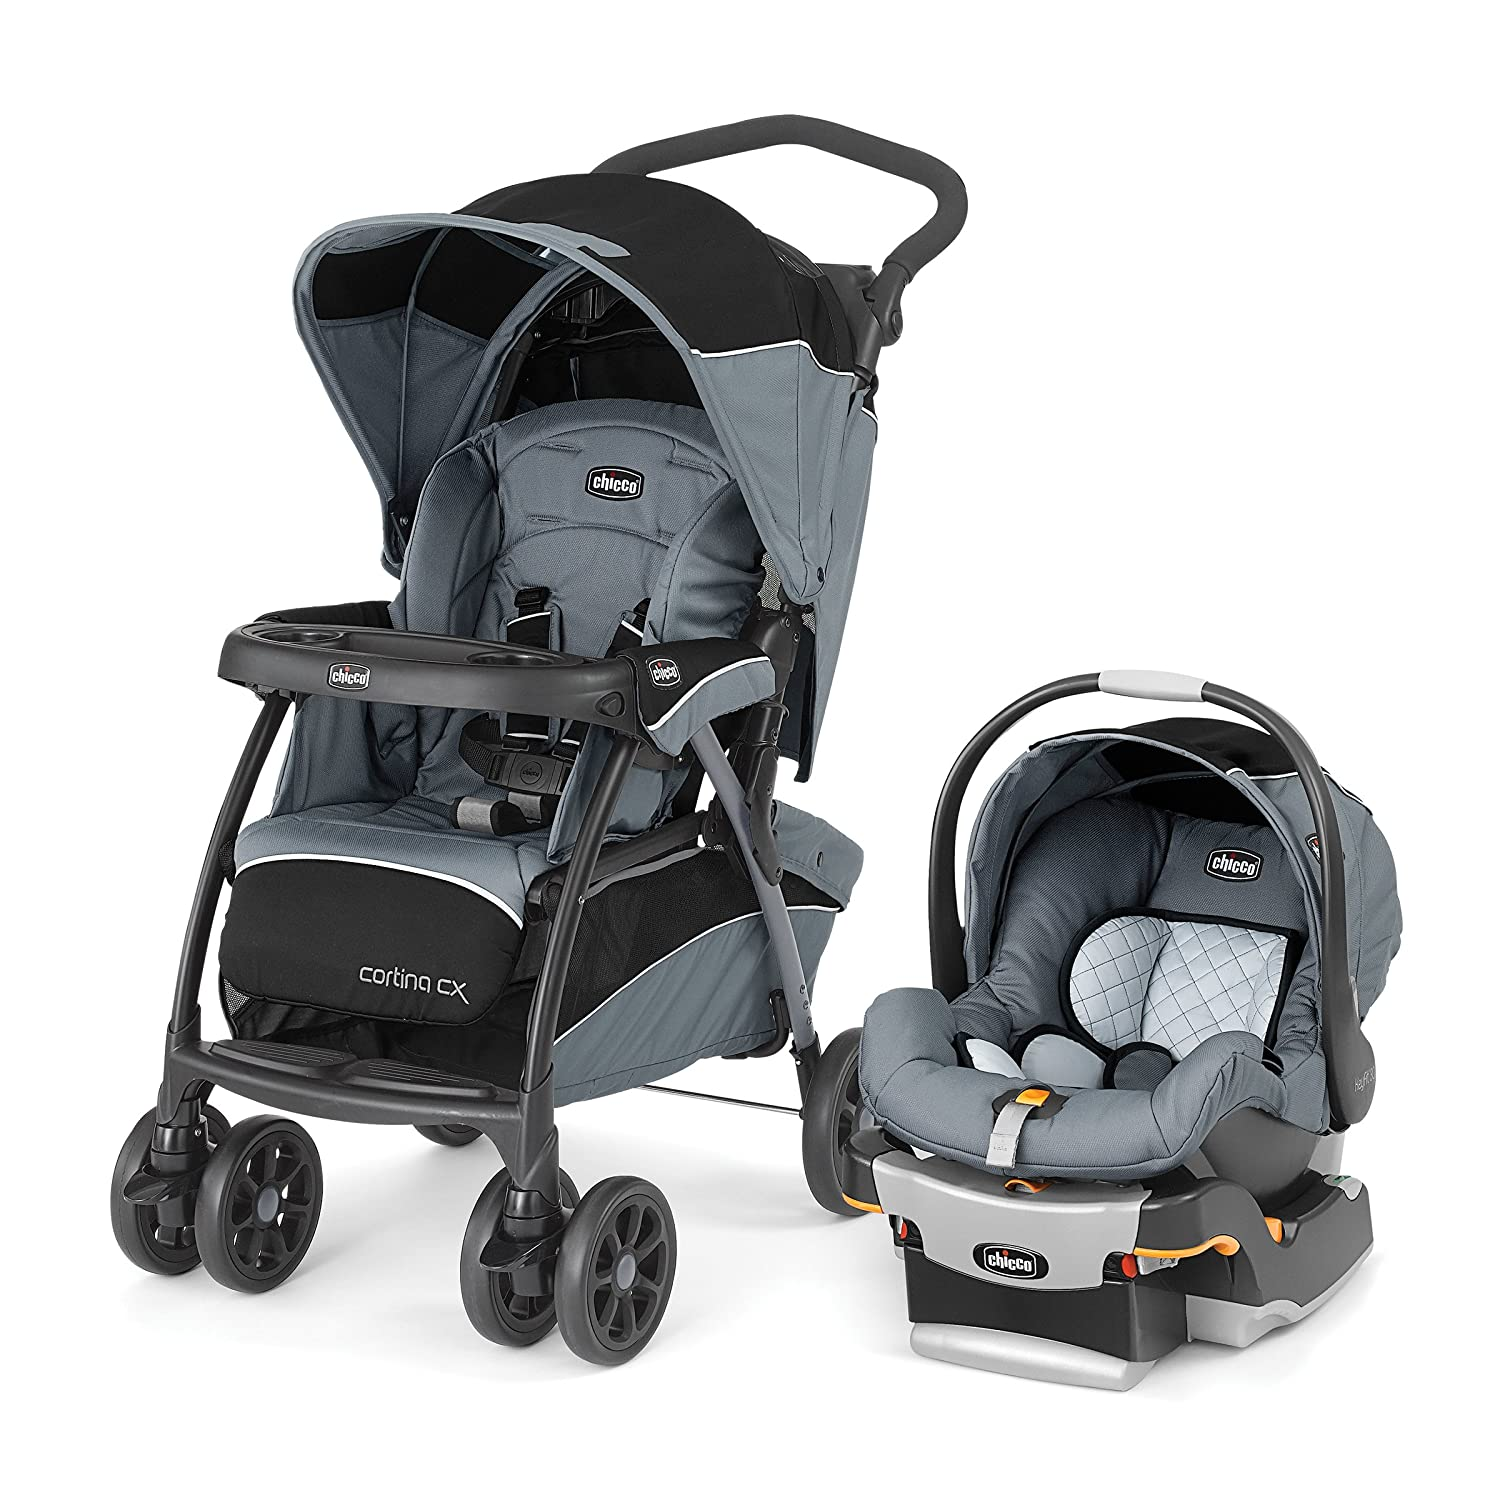 Chicco Cortina CX Travel System, Iron 00079748720070